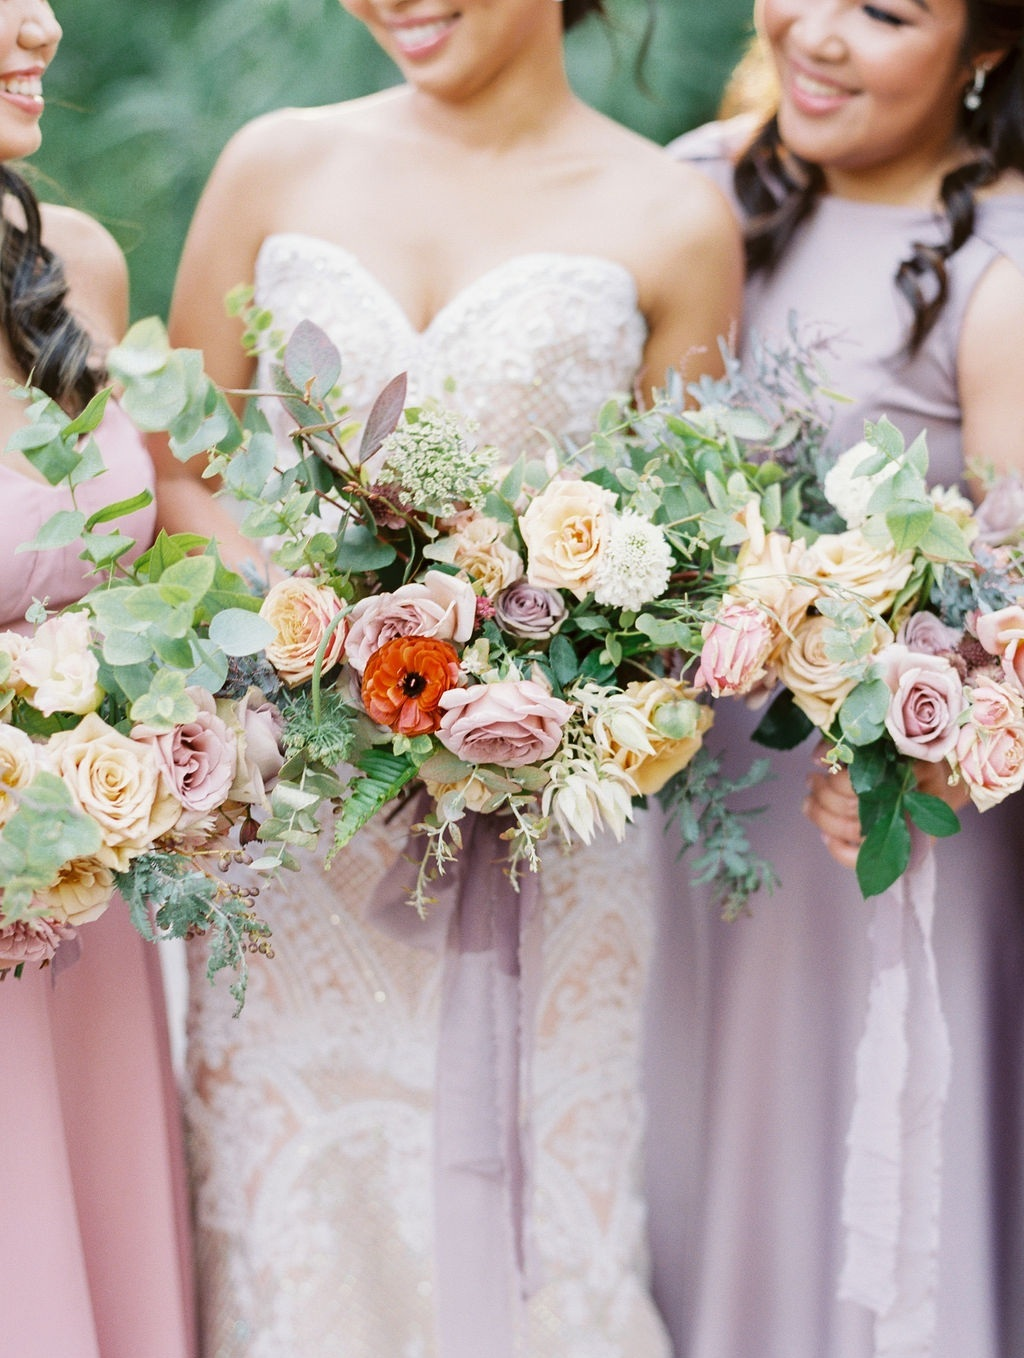 STYLE ME PRETTY FEATURE - A lush, autumn wedding with stone fruit accents at Rancho Las Lomas, CaliforniaVIEW NOW